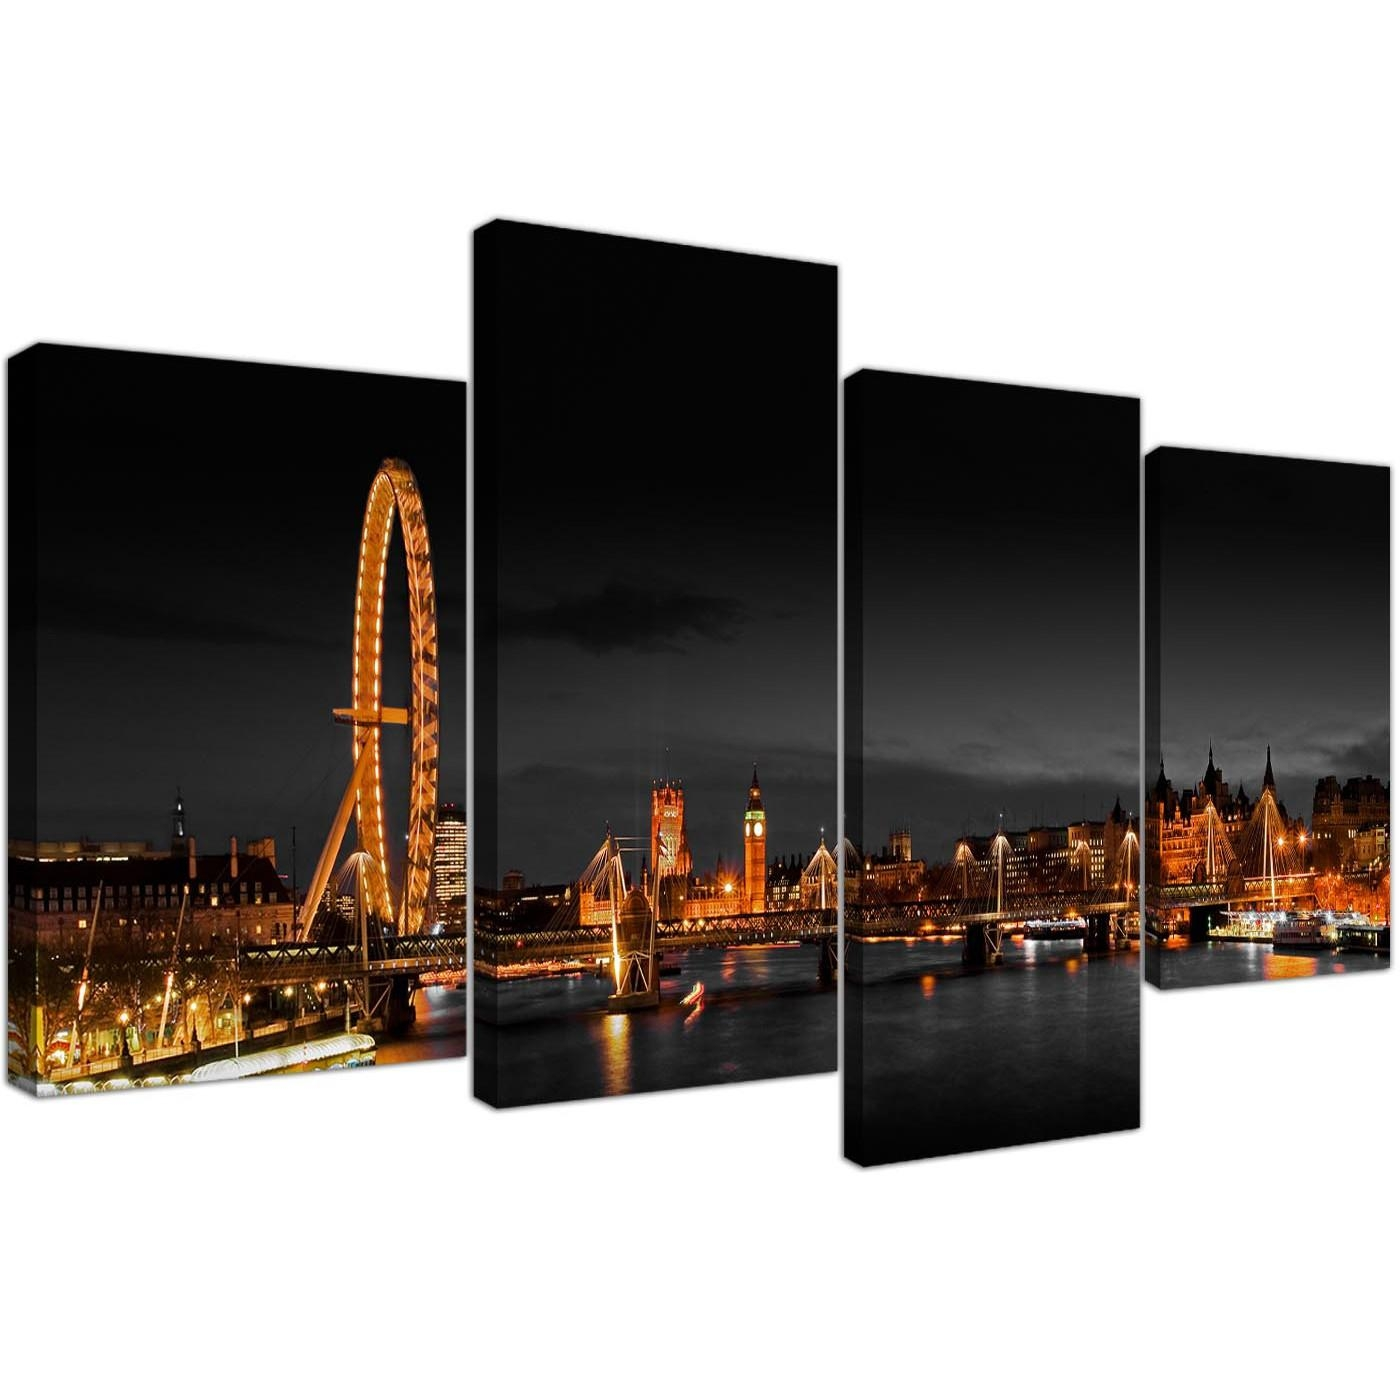 Canvas Wall Art Of Night Time London Eye For Your Office – Set Of 4 Regarding London Scene Wall Art (Image 4 of 20)